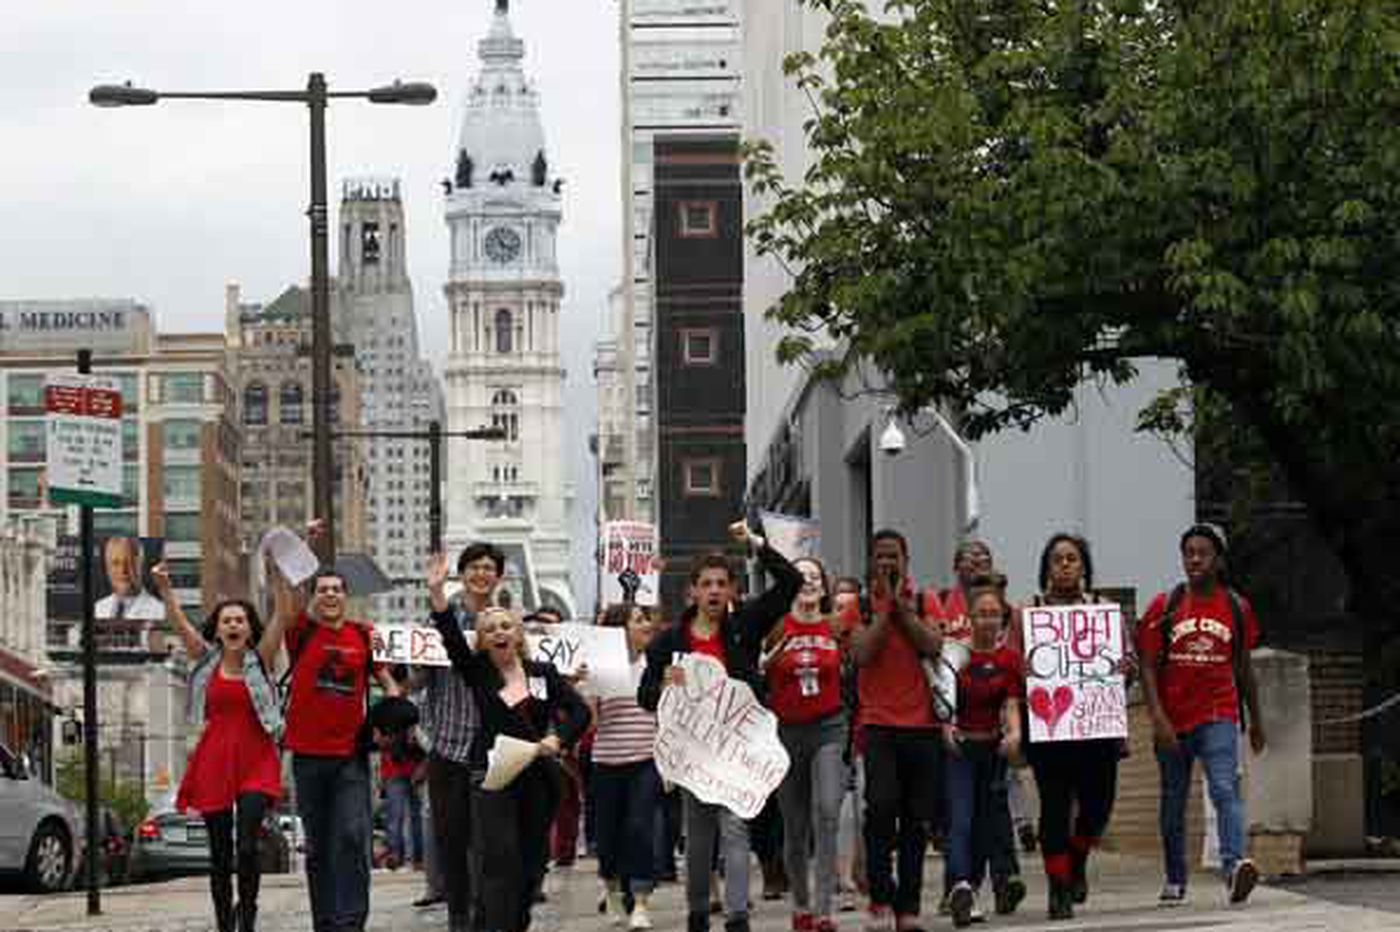 City students converge to protest budget cuts